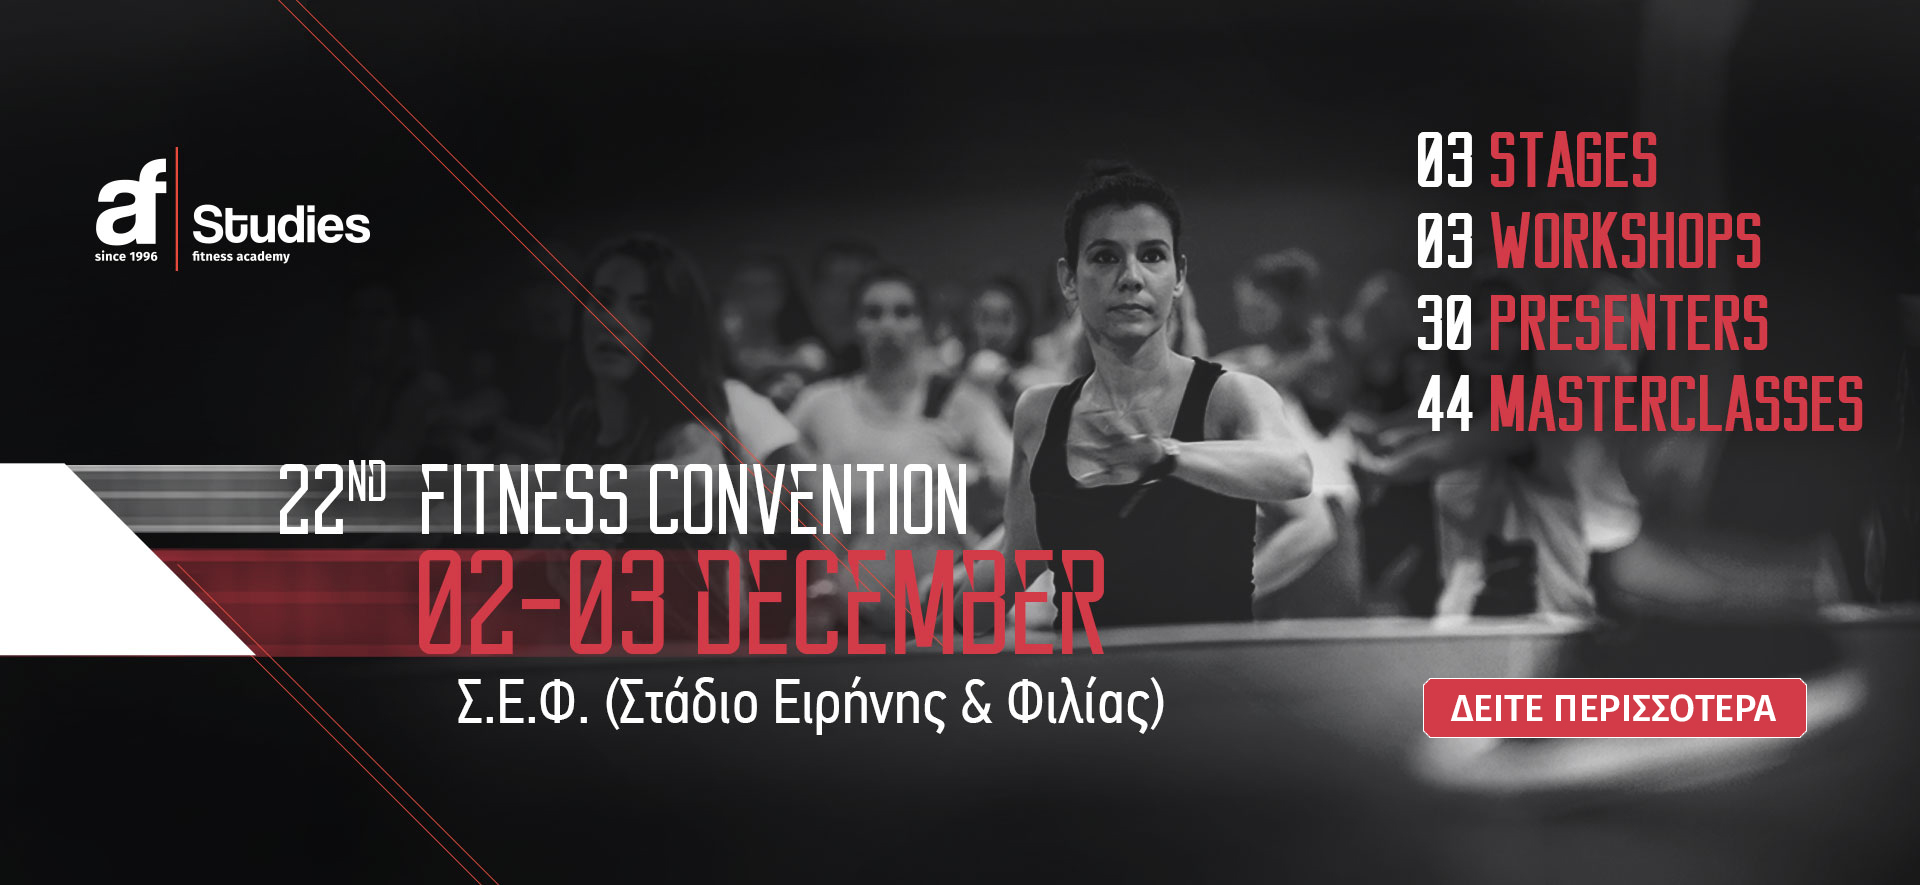 22nd Fitness Convention by AF Studies